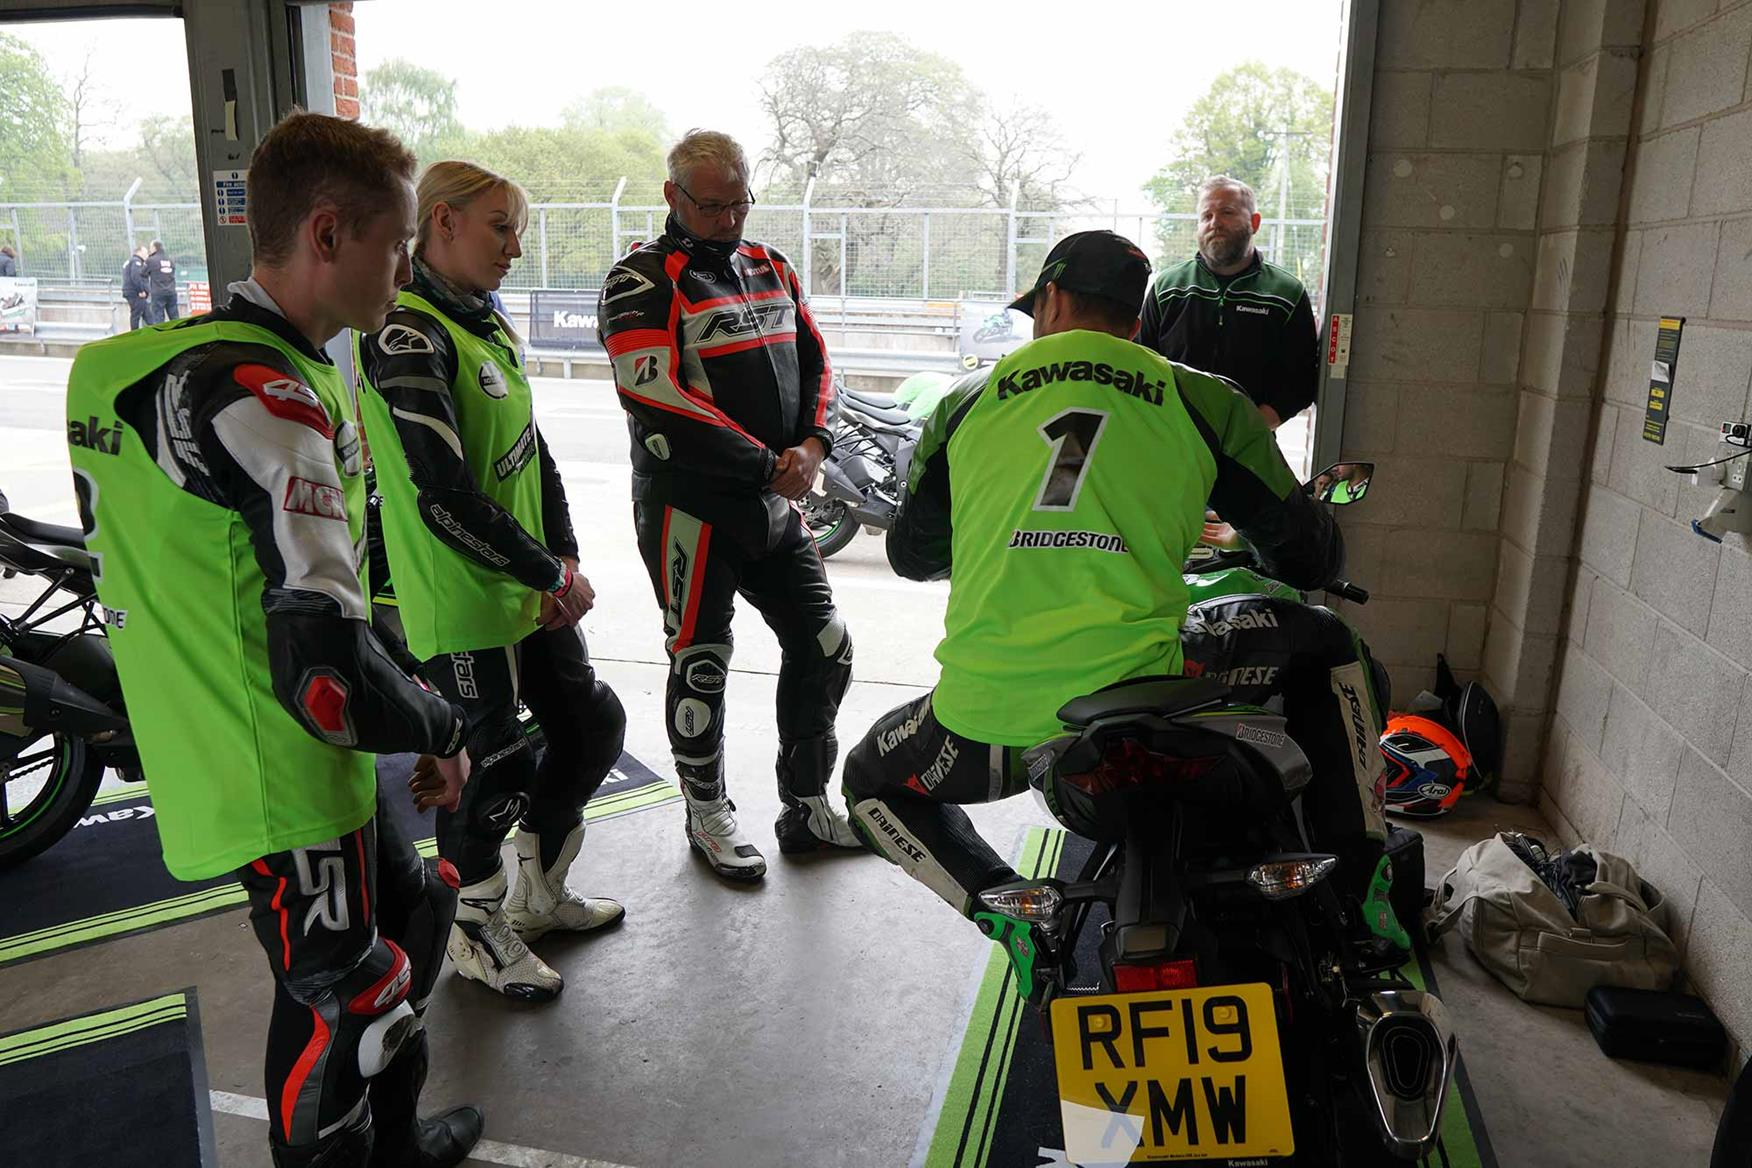 Leon Haslam offers instruction on body position